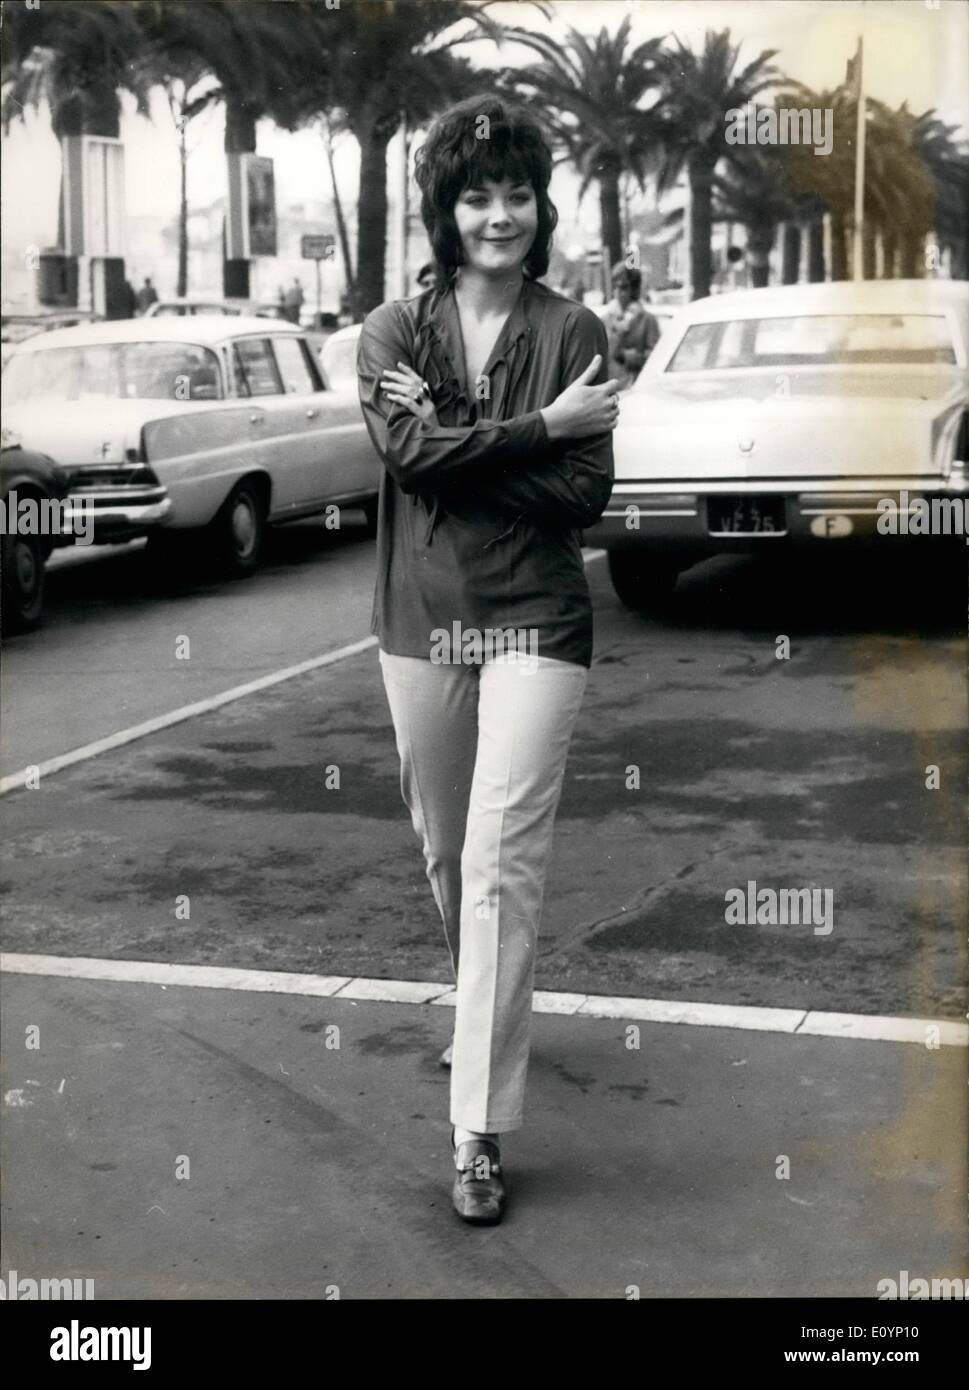 Jan 01 1971 linda thorson to present miden british actress 01 1971 linda thorson to present miden british actress linda thorson is now at cannes where she will present the two gala performances of the miden thecheapjerseys Image collections